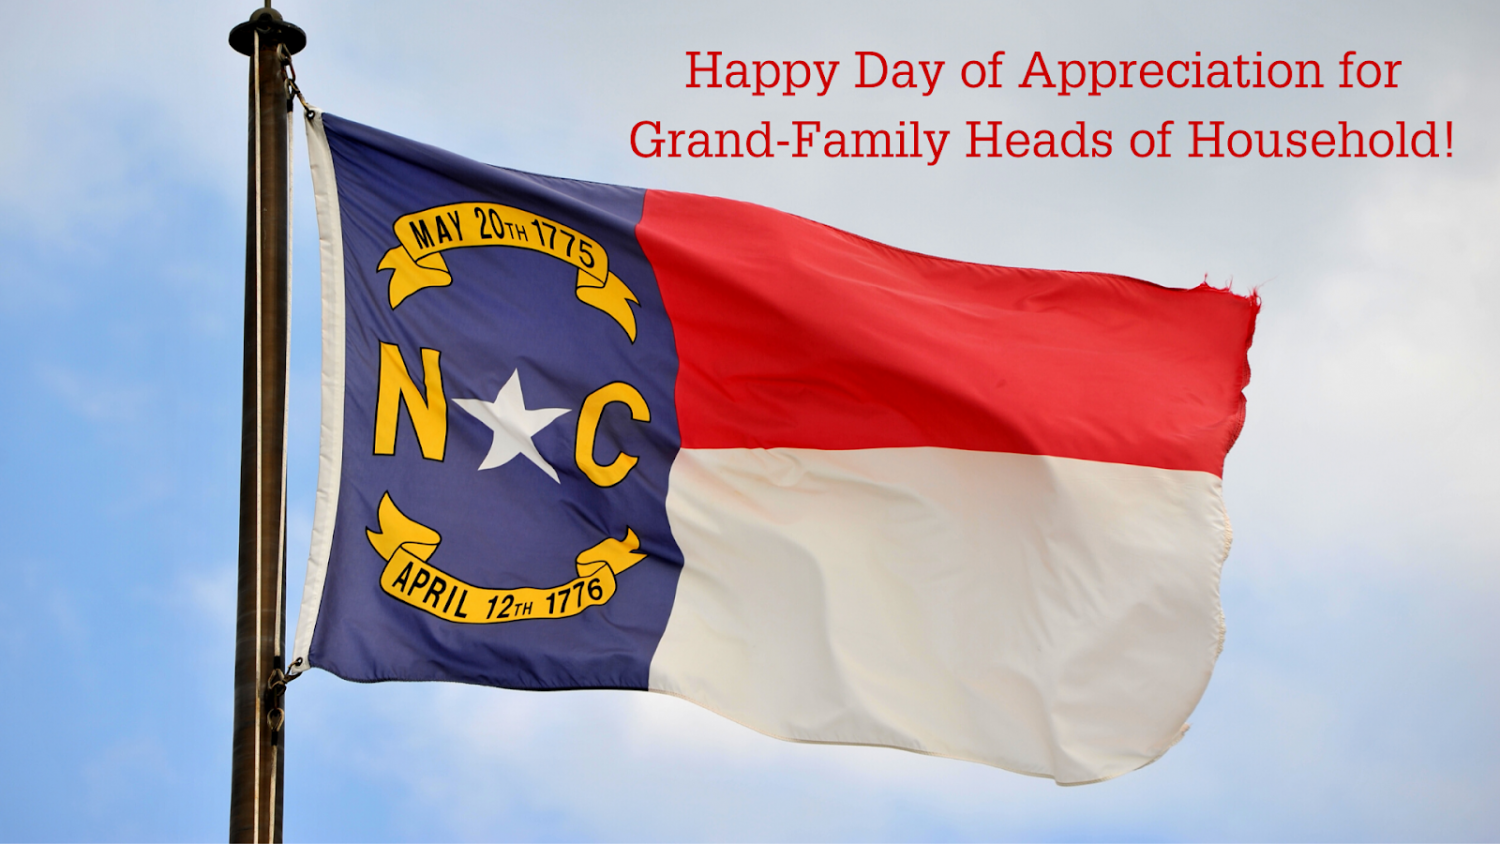 North Carolina Flag with captioned text Happy Day of Appreciation for Grand-Family Heads of Household!